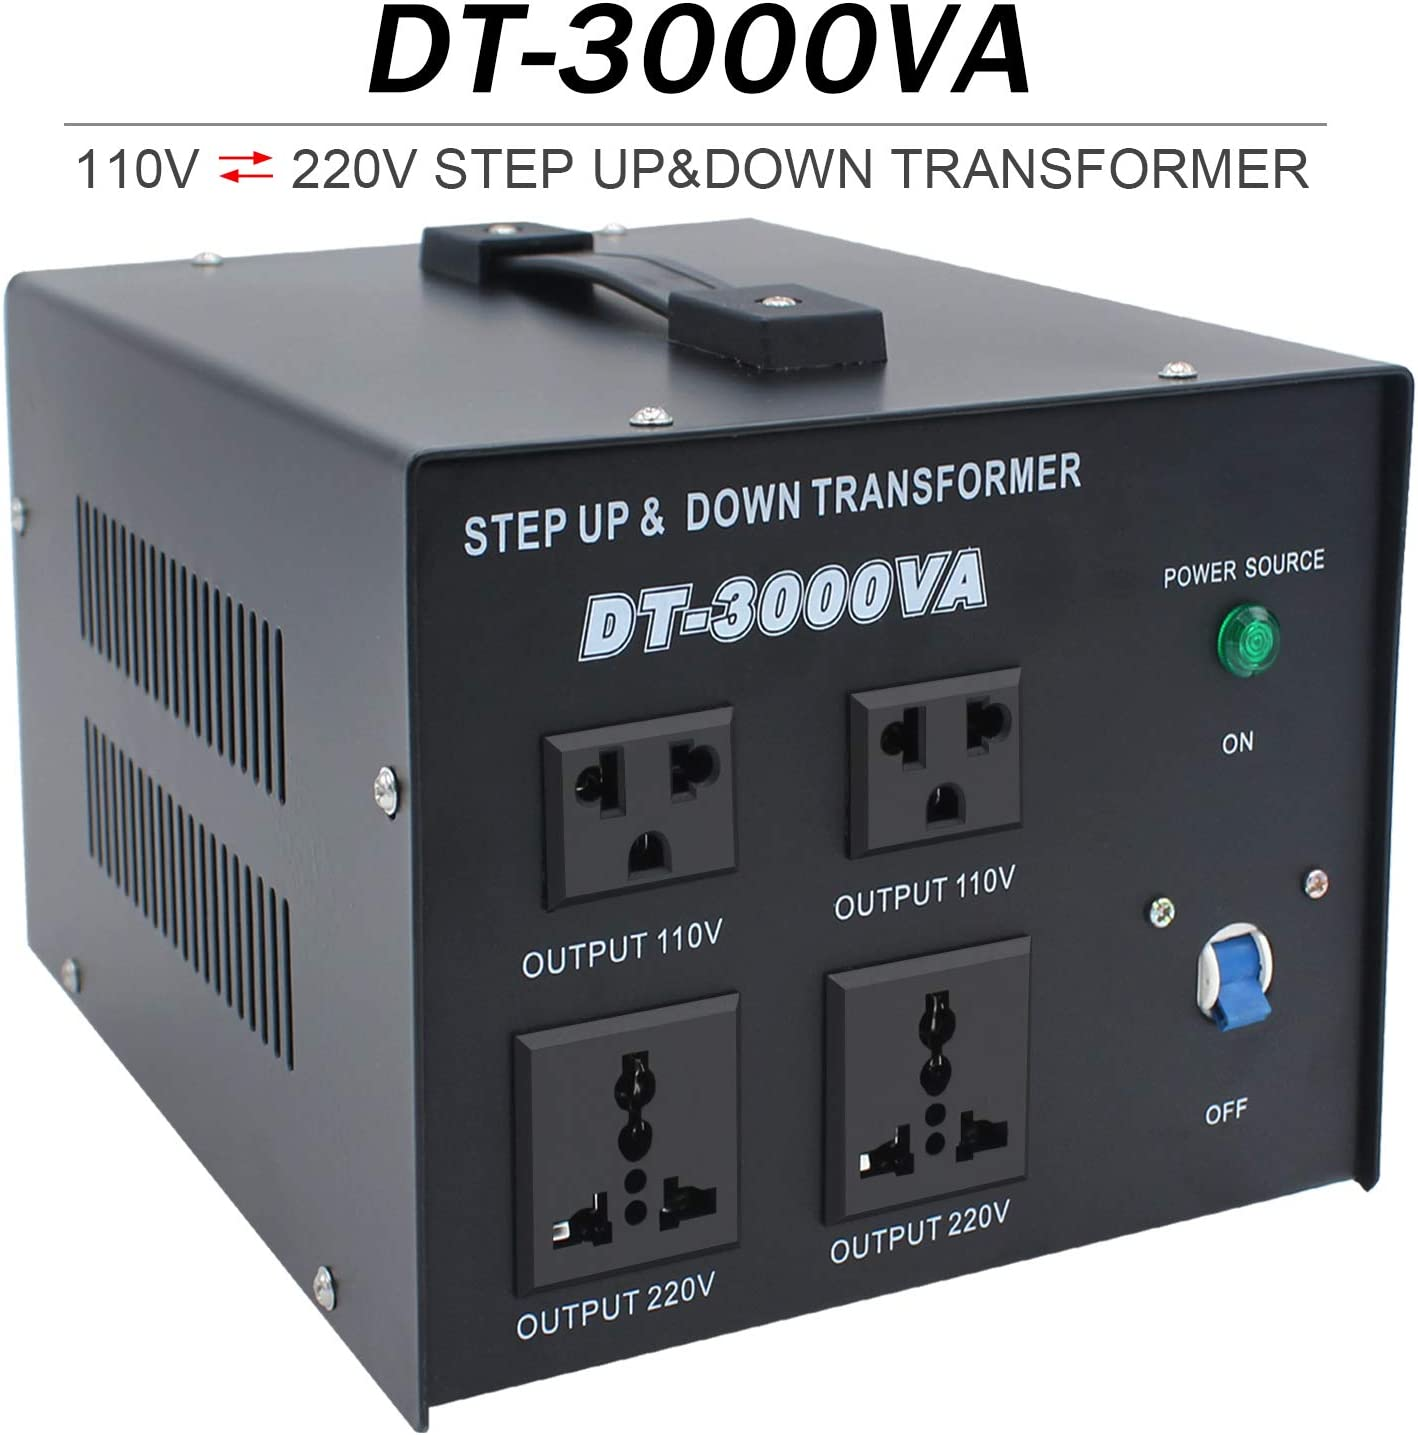 Yinleader 3000W Voltage Transformer-3000 Watt Heavy Duty Step Up/Down AC 110V/120V/220V/240V Power Converter,with US Standard, Universal AC Outlets-Circuit Breaker Protection